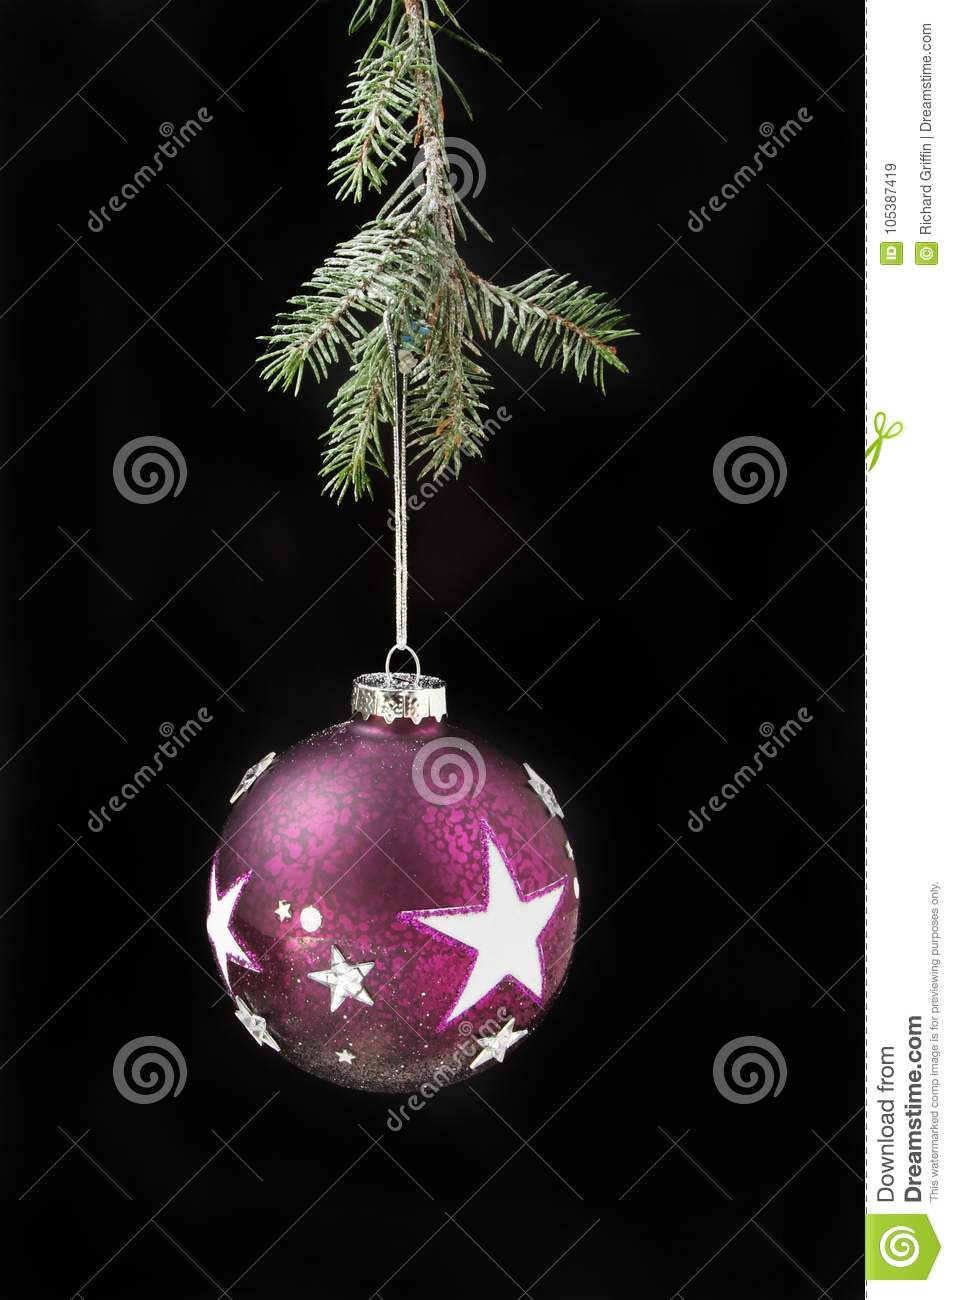 Bauble with stars against black